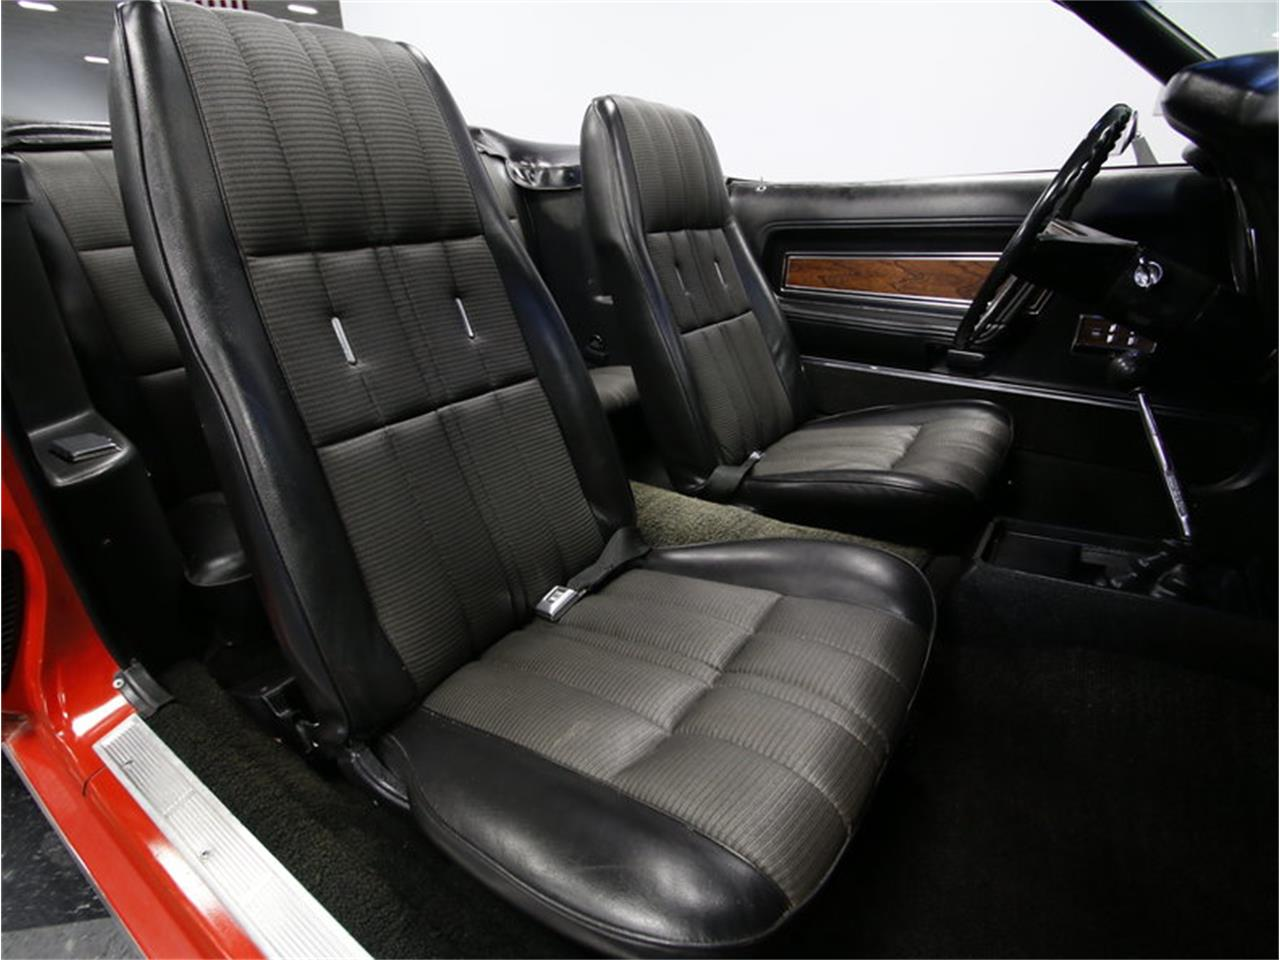 Large Picture of '73 Ford Mustang 351 Cobra Jet - $24,995.00 - KISW